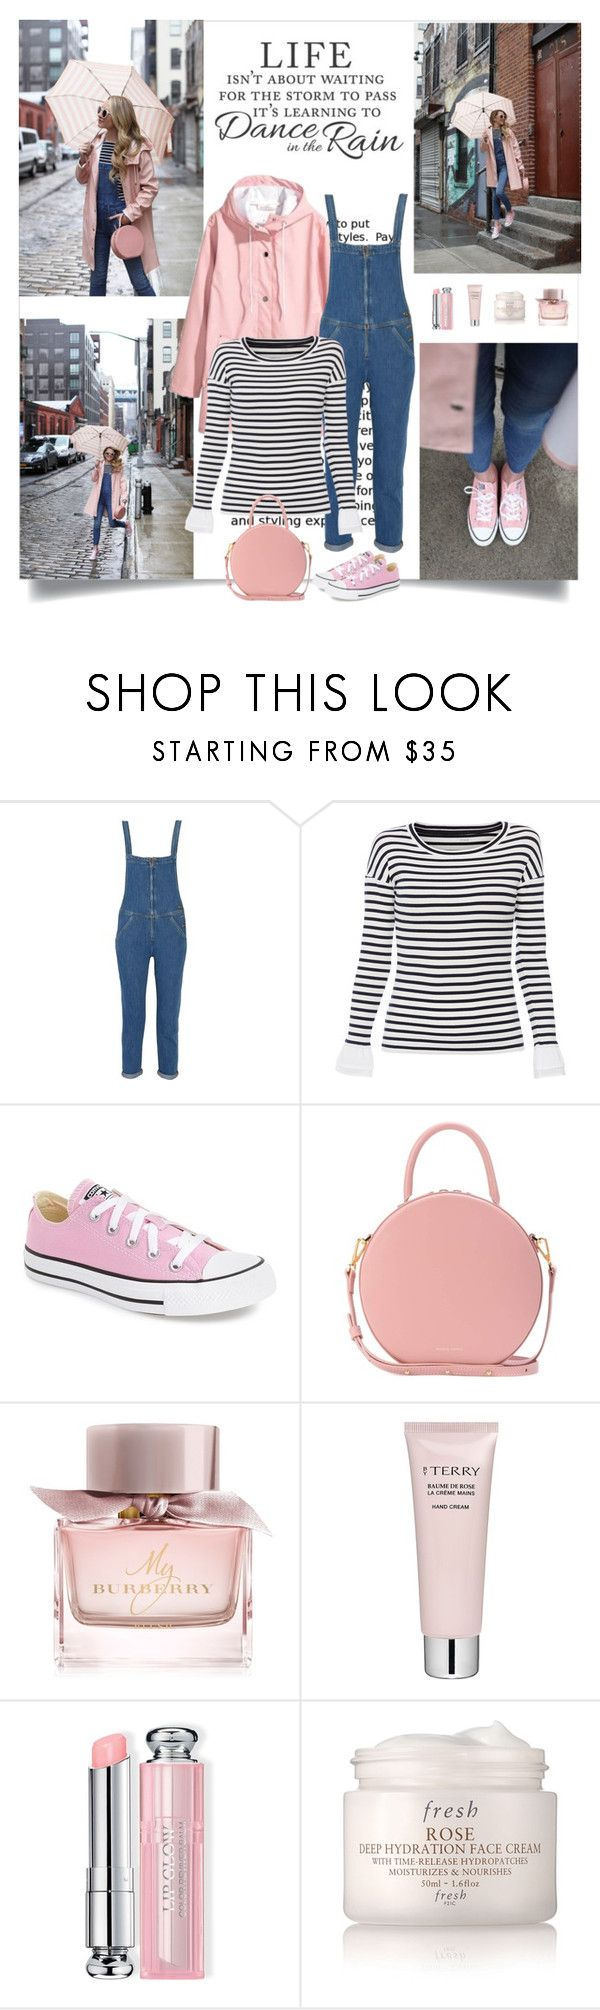 """""""Dancing in the rain"""" by danniss ❤ liked on Polyvore featuring H&M, M.i.h Jeans, Marc Cain Sports, Converse, Mansur Gavriel, Burberry, By Terry, Christian Dior and Fresh"""